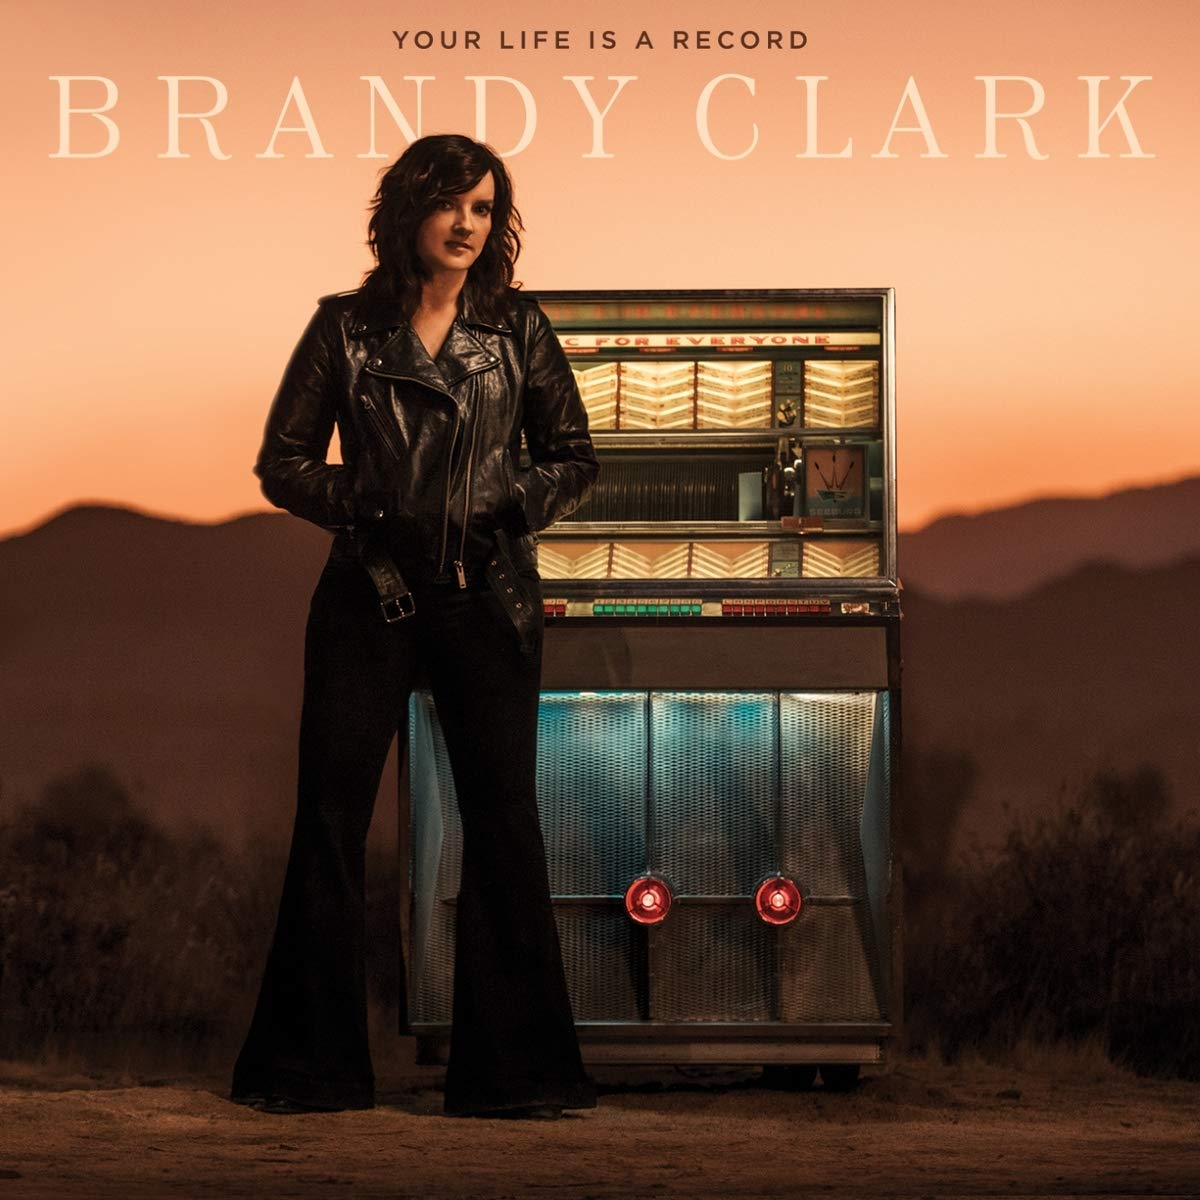 Brandy Clark — Your Life is a Record